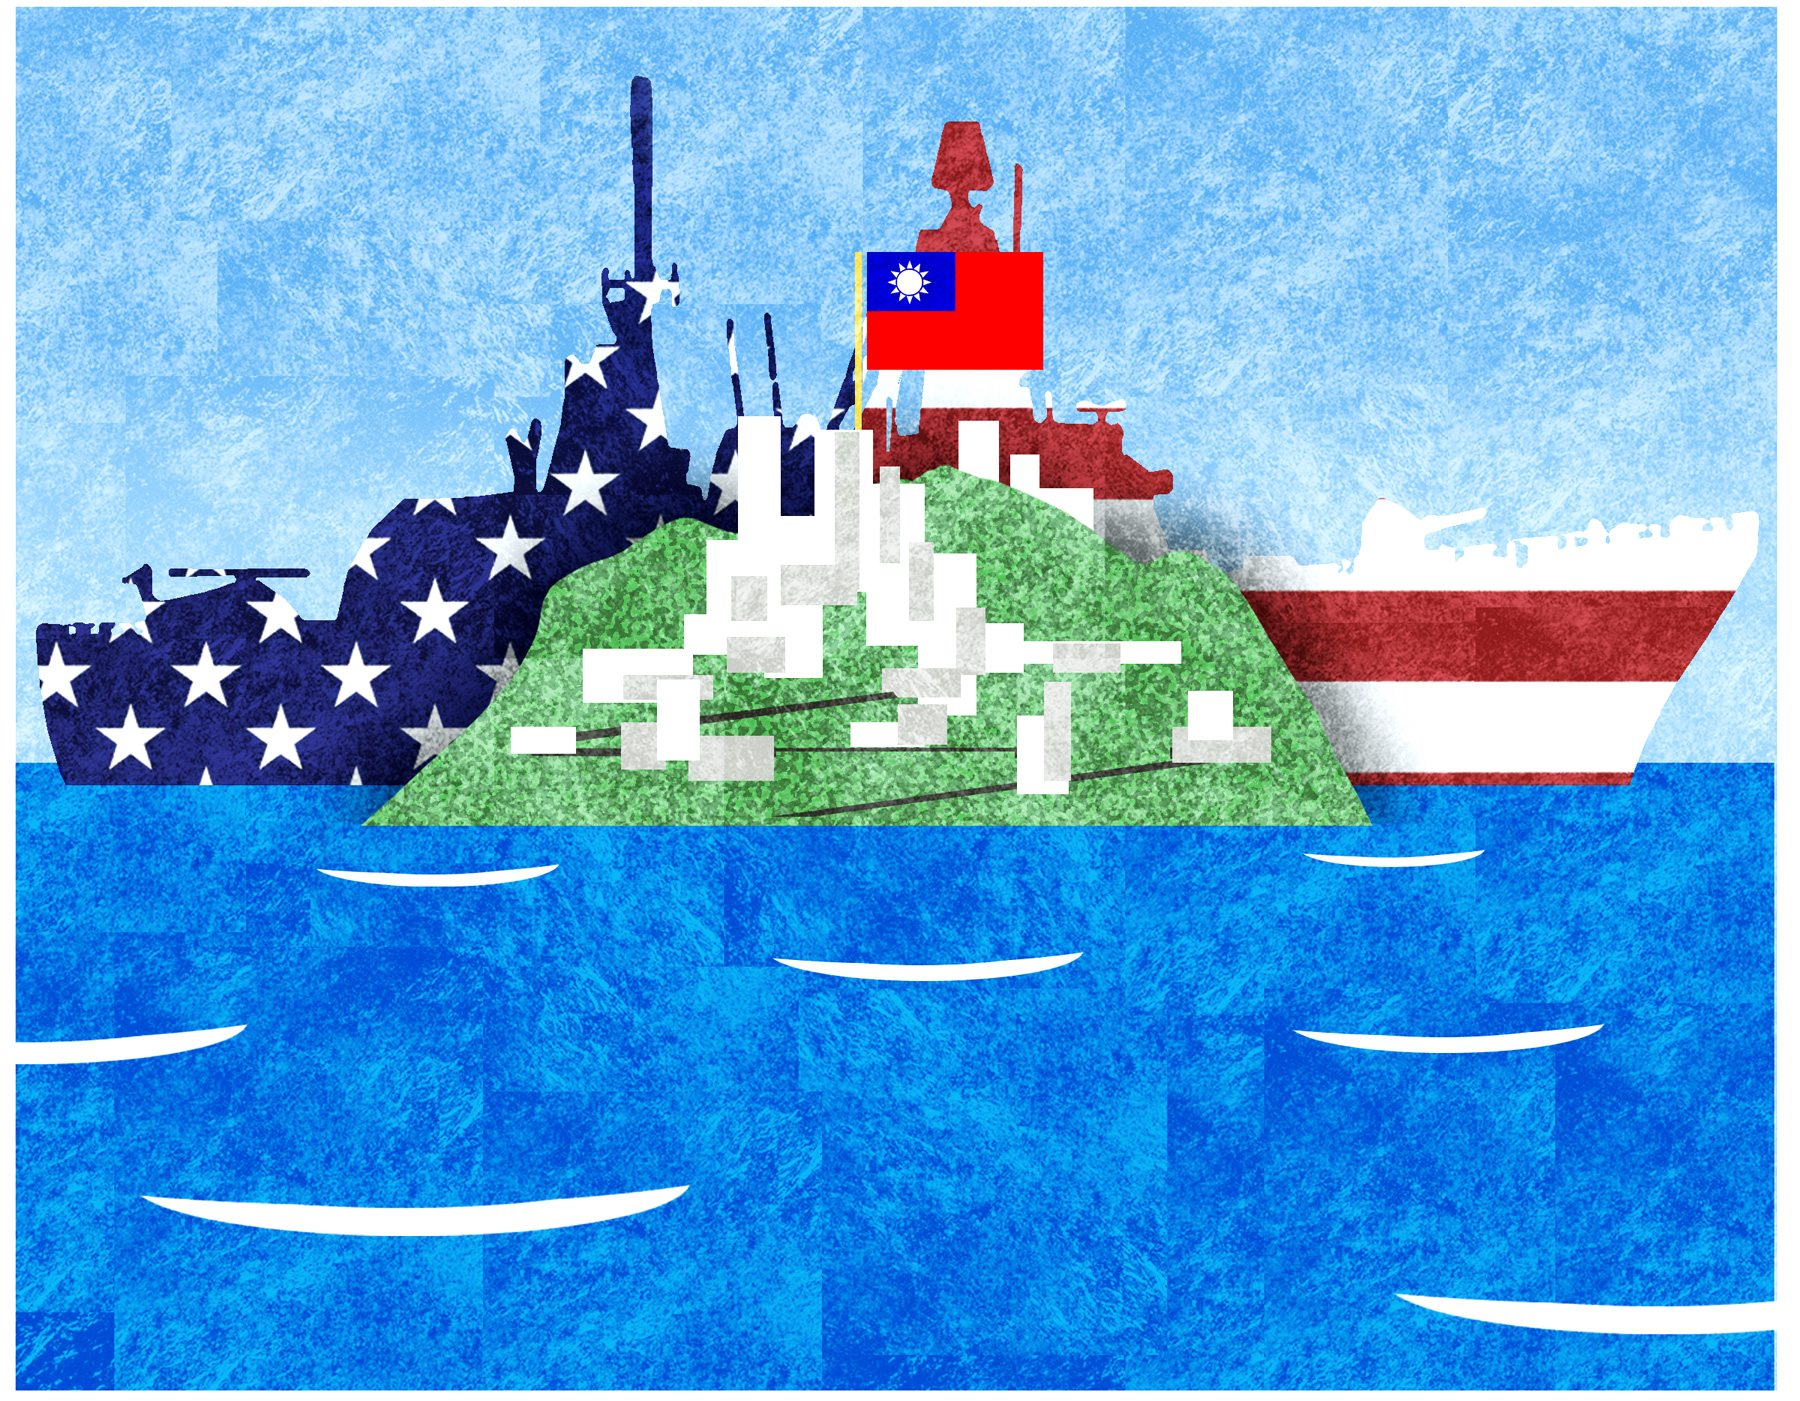 Warship visits to Taiwan will show China that the United States holds the winning hand